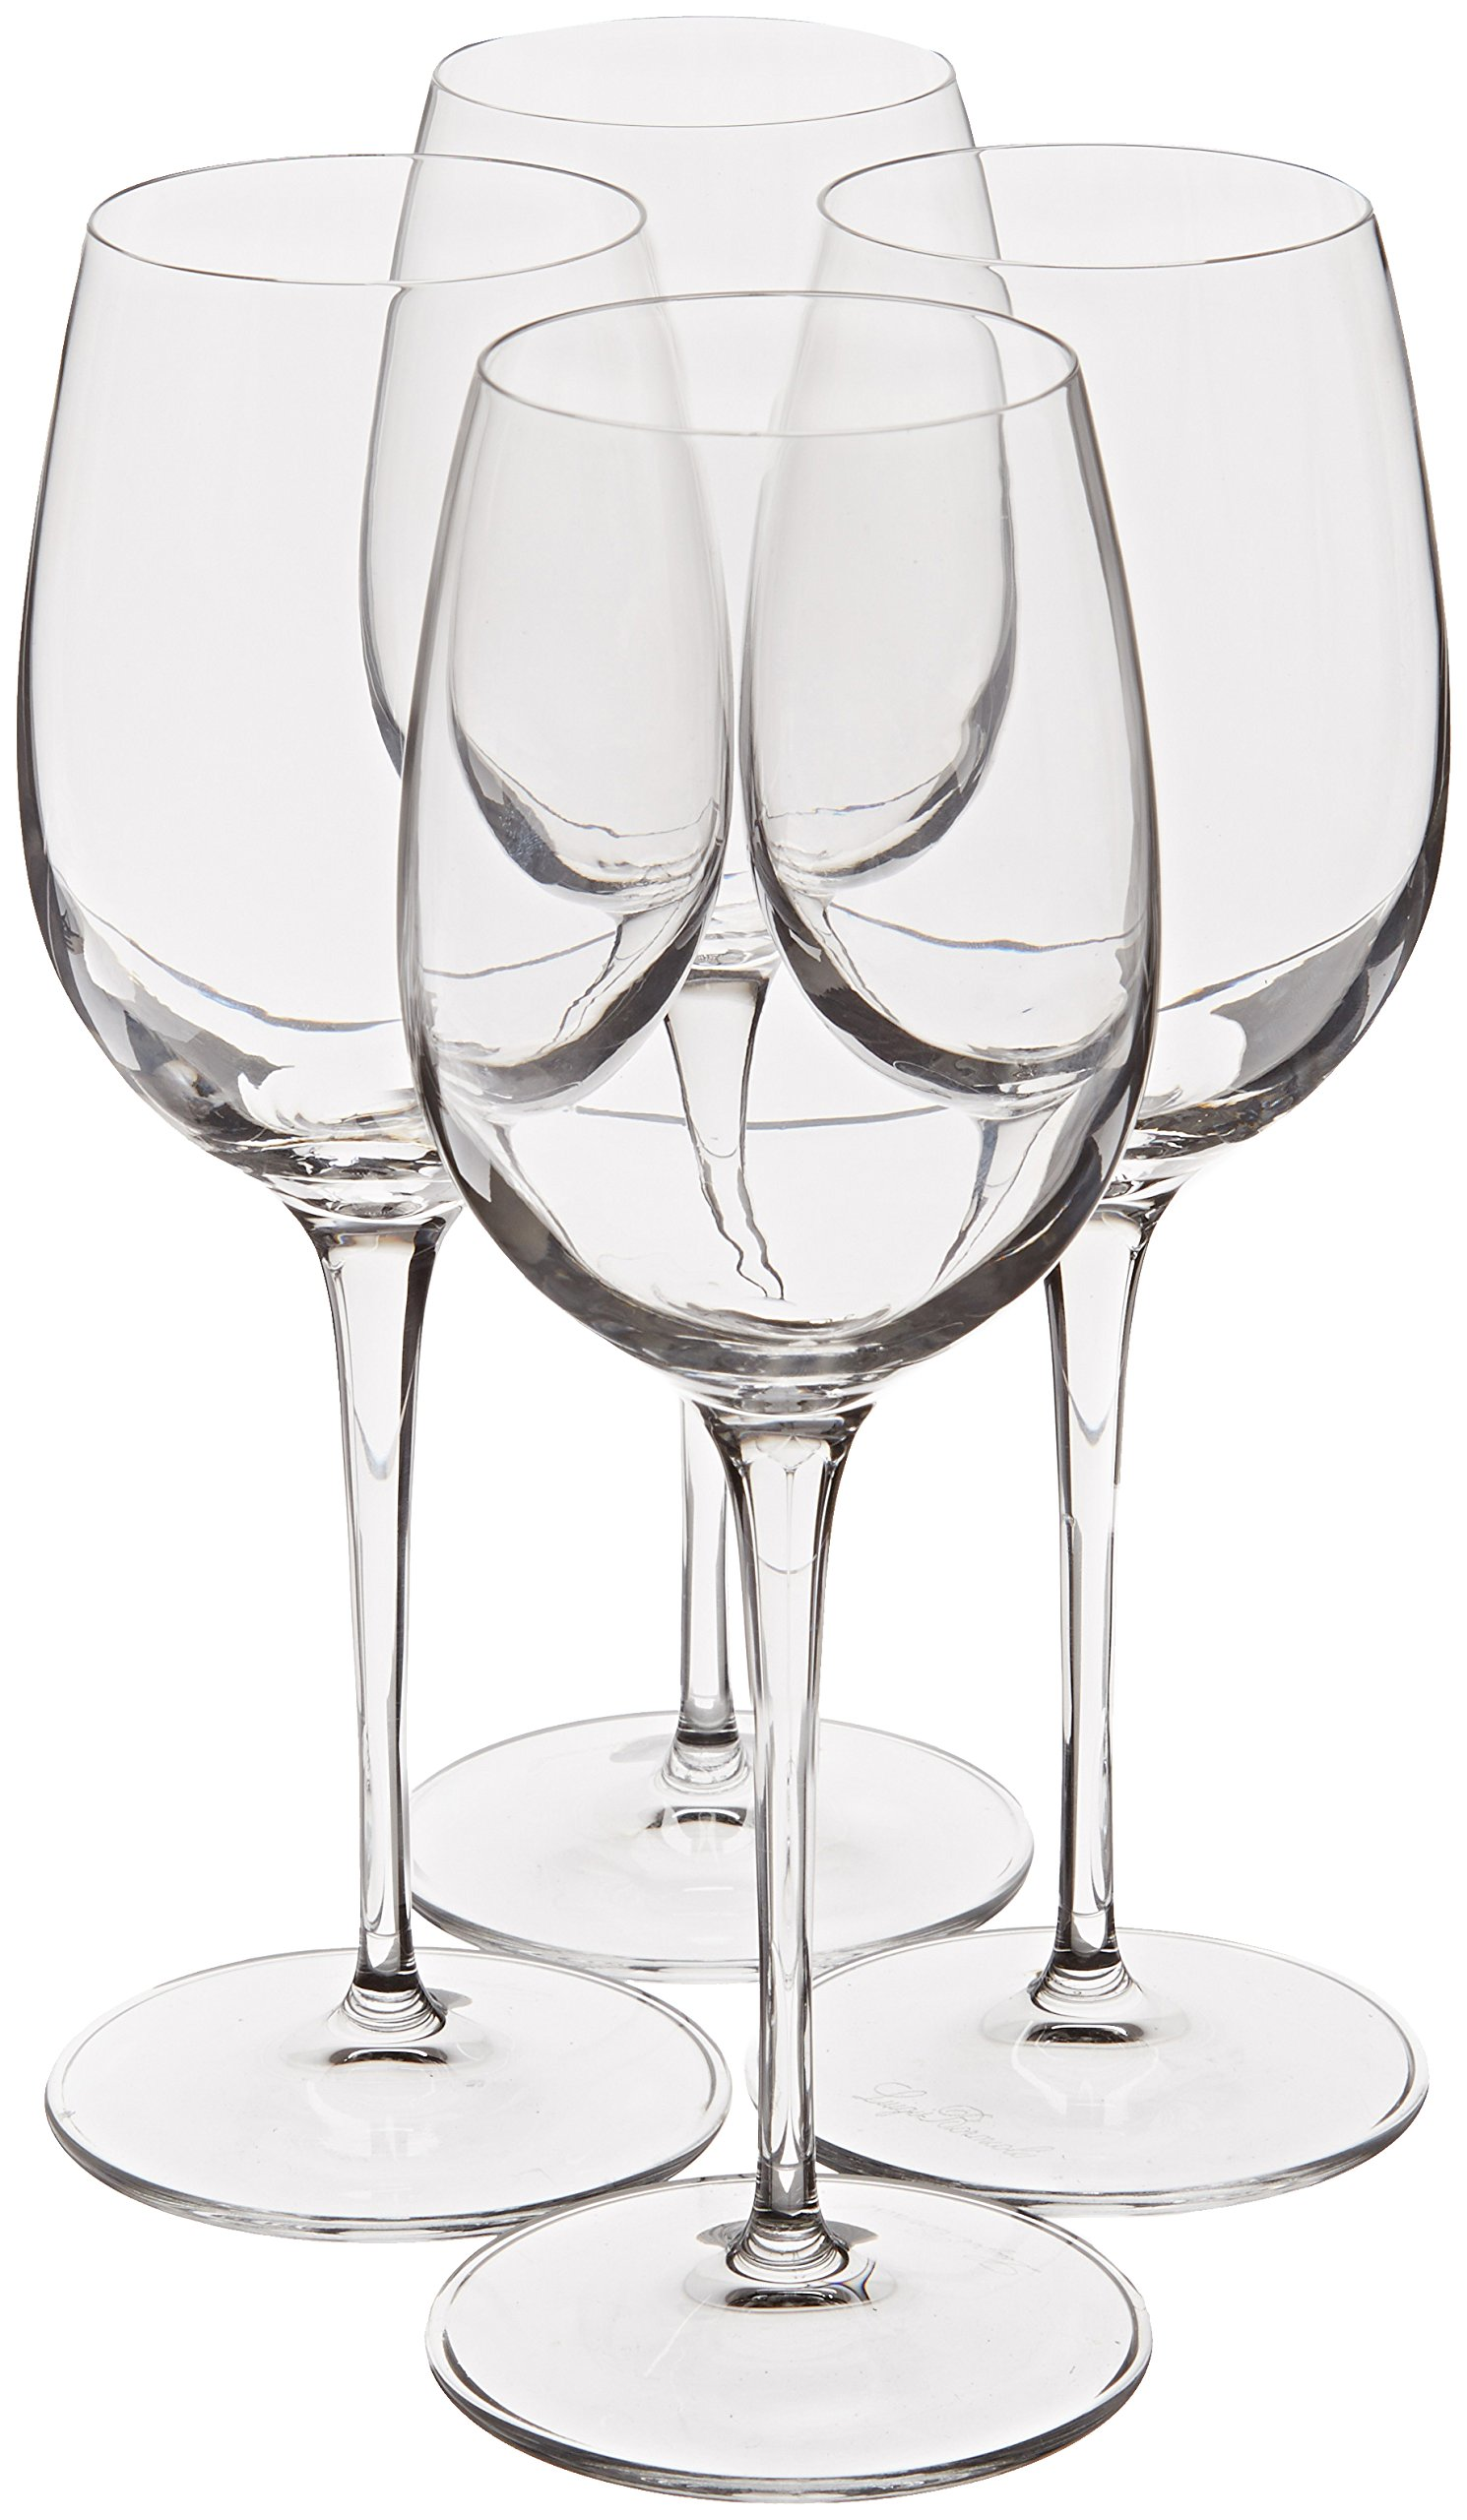 Luigi Bormioli Crescendo 13-Ounce Chardonnay Wine Glasses, Set of 4